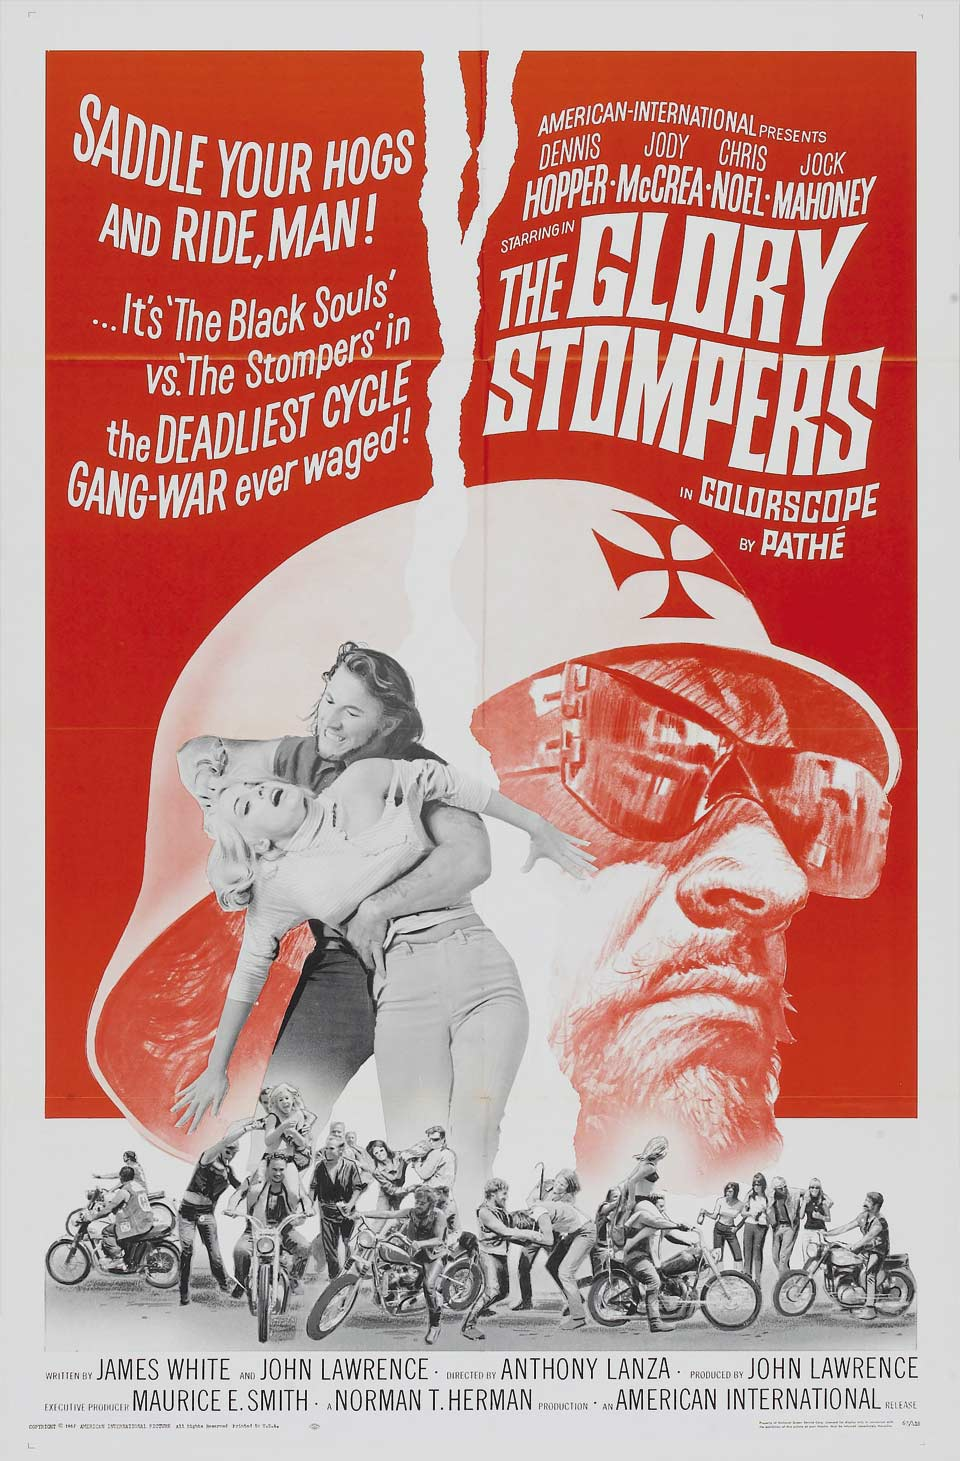 theglorystompers